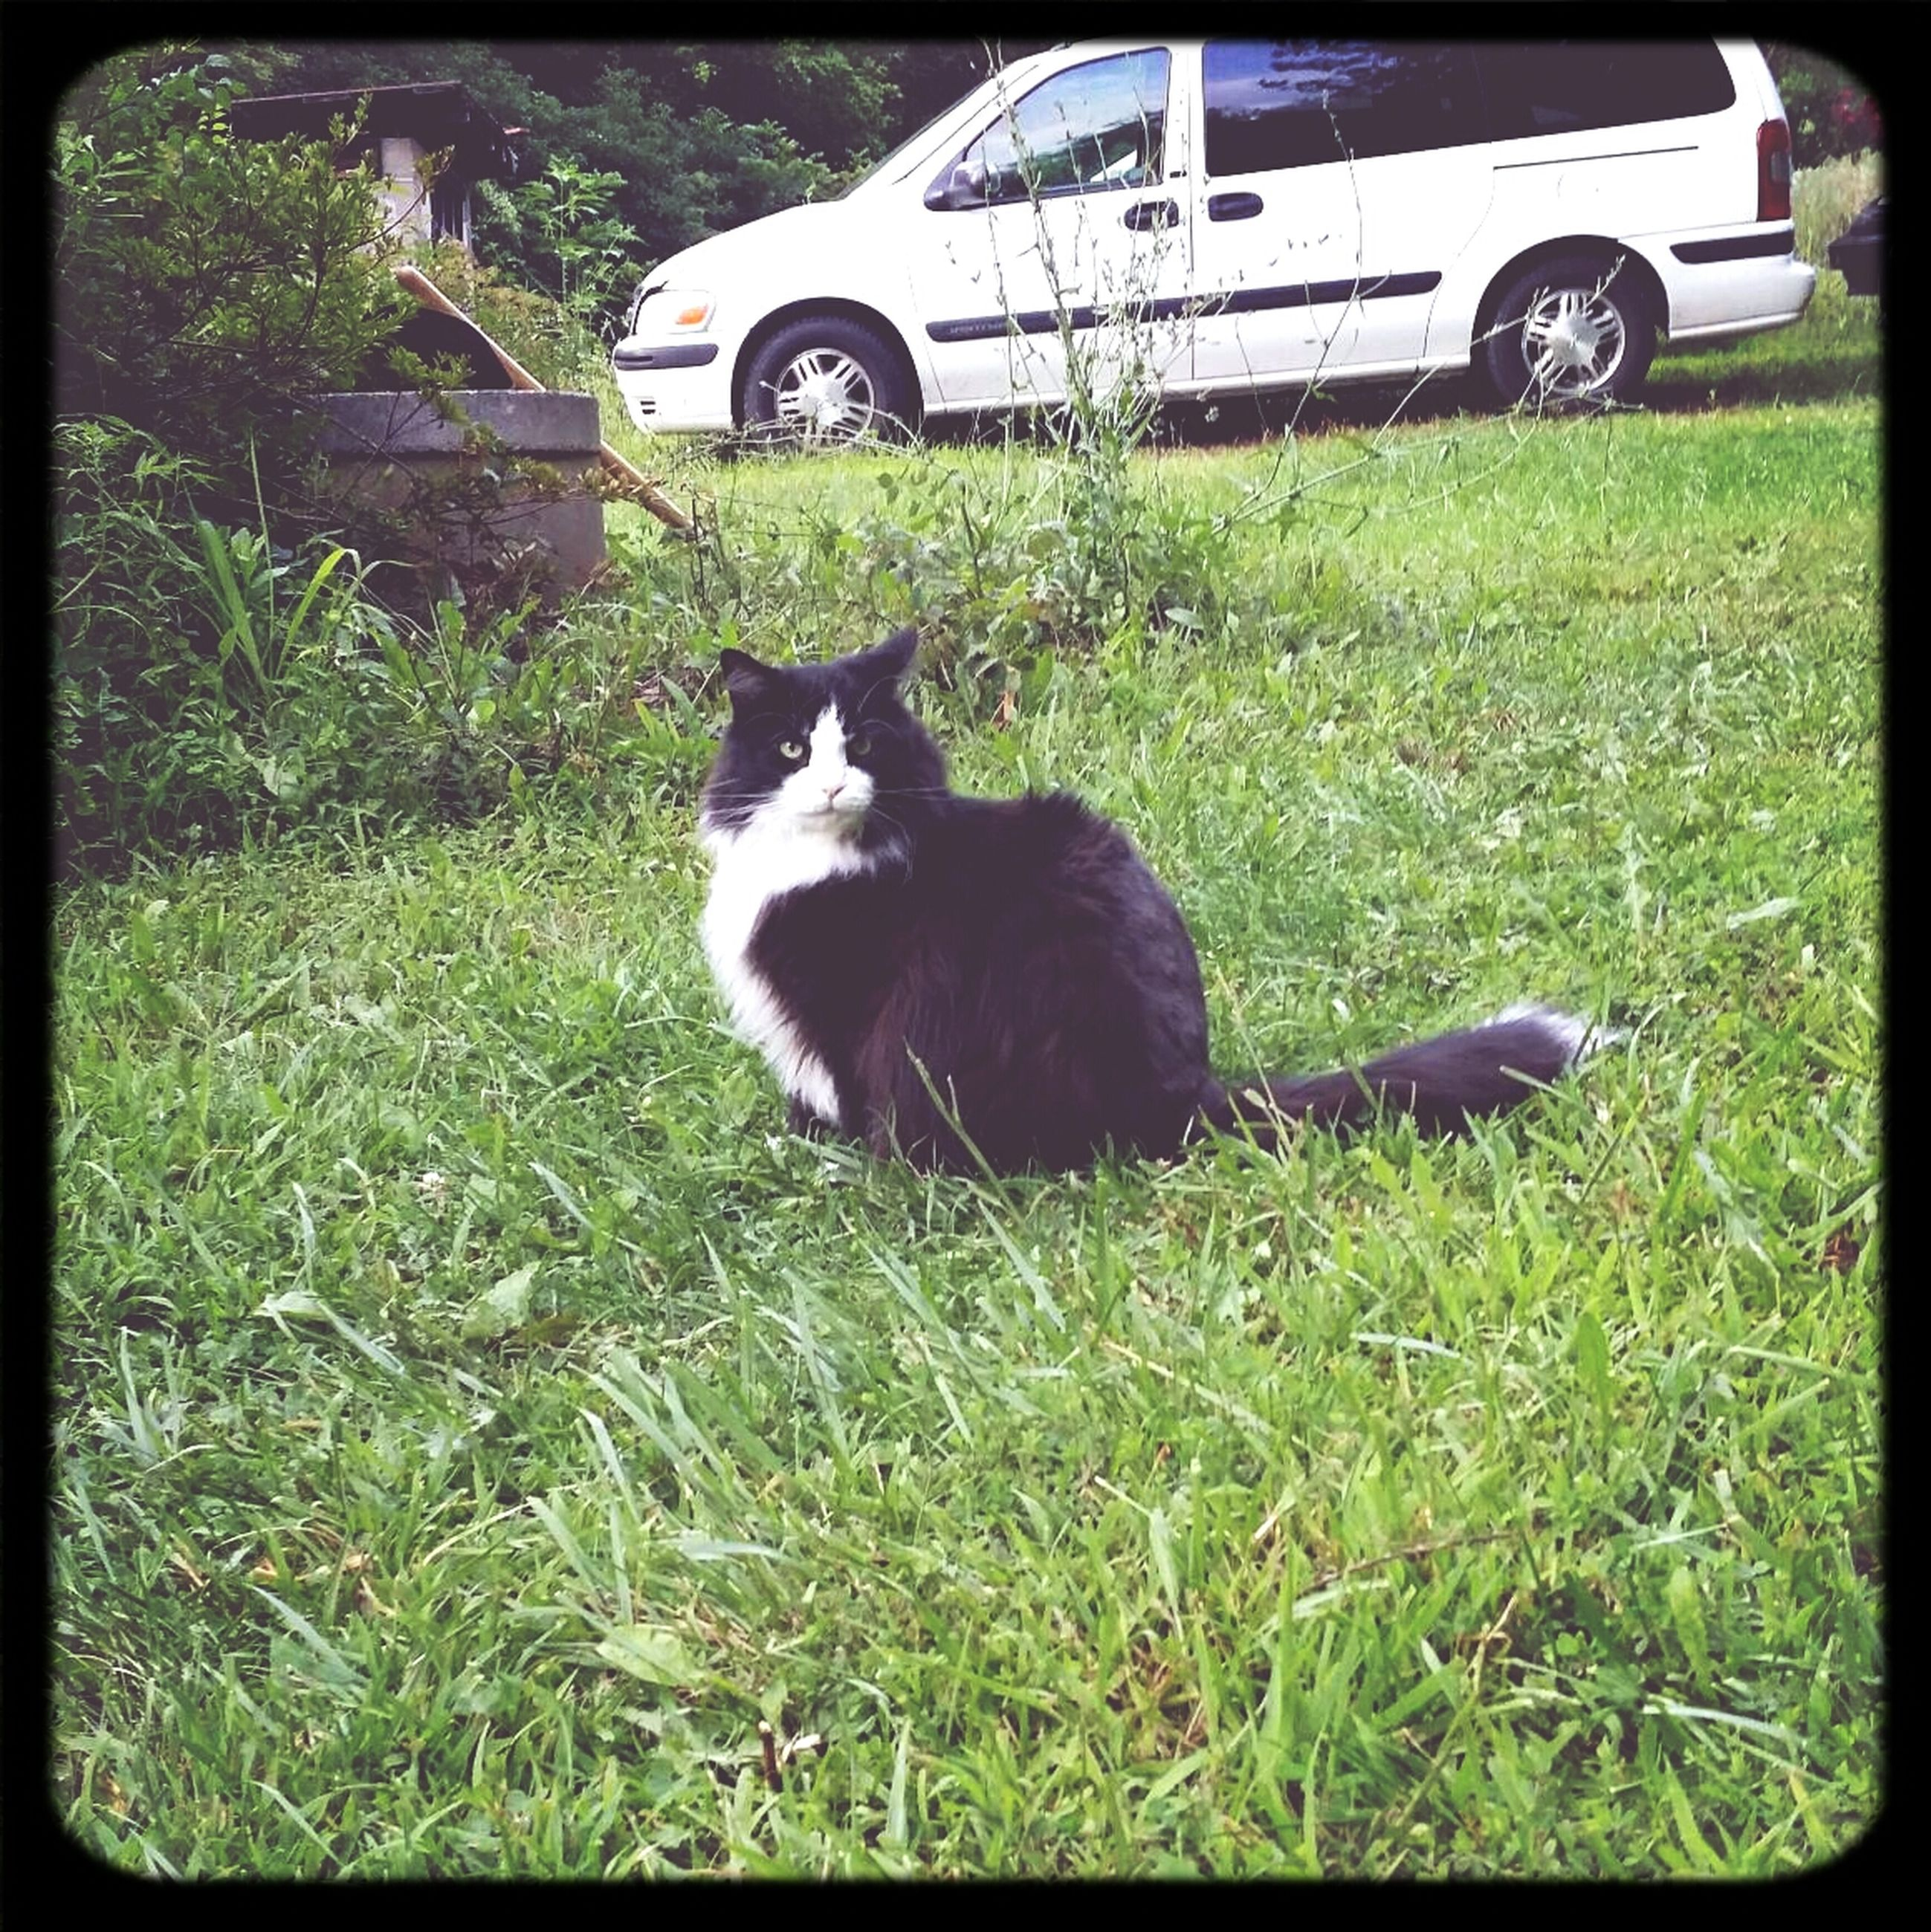 pets, domestic animals, domestic cat, one animal, cat, animal themes, mammal, feline, grass, transfer print, sitting, whisker, looking at camera, field, plant, grassy, portrait, auto post production filter, front or back yard, alertness